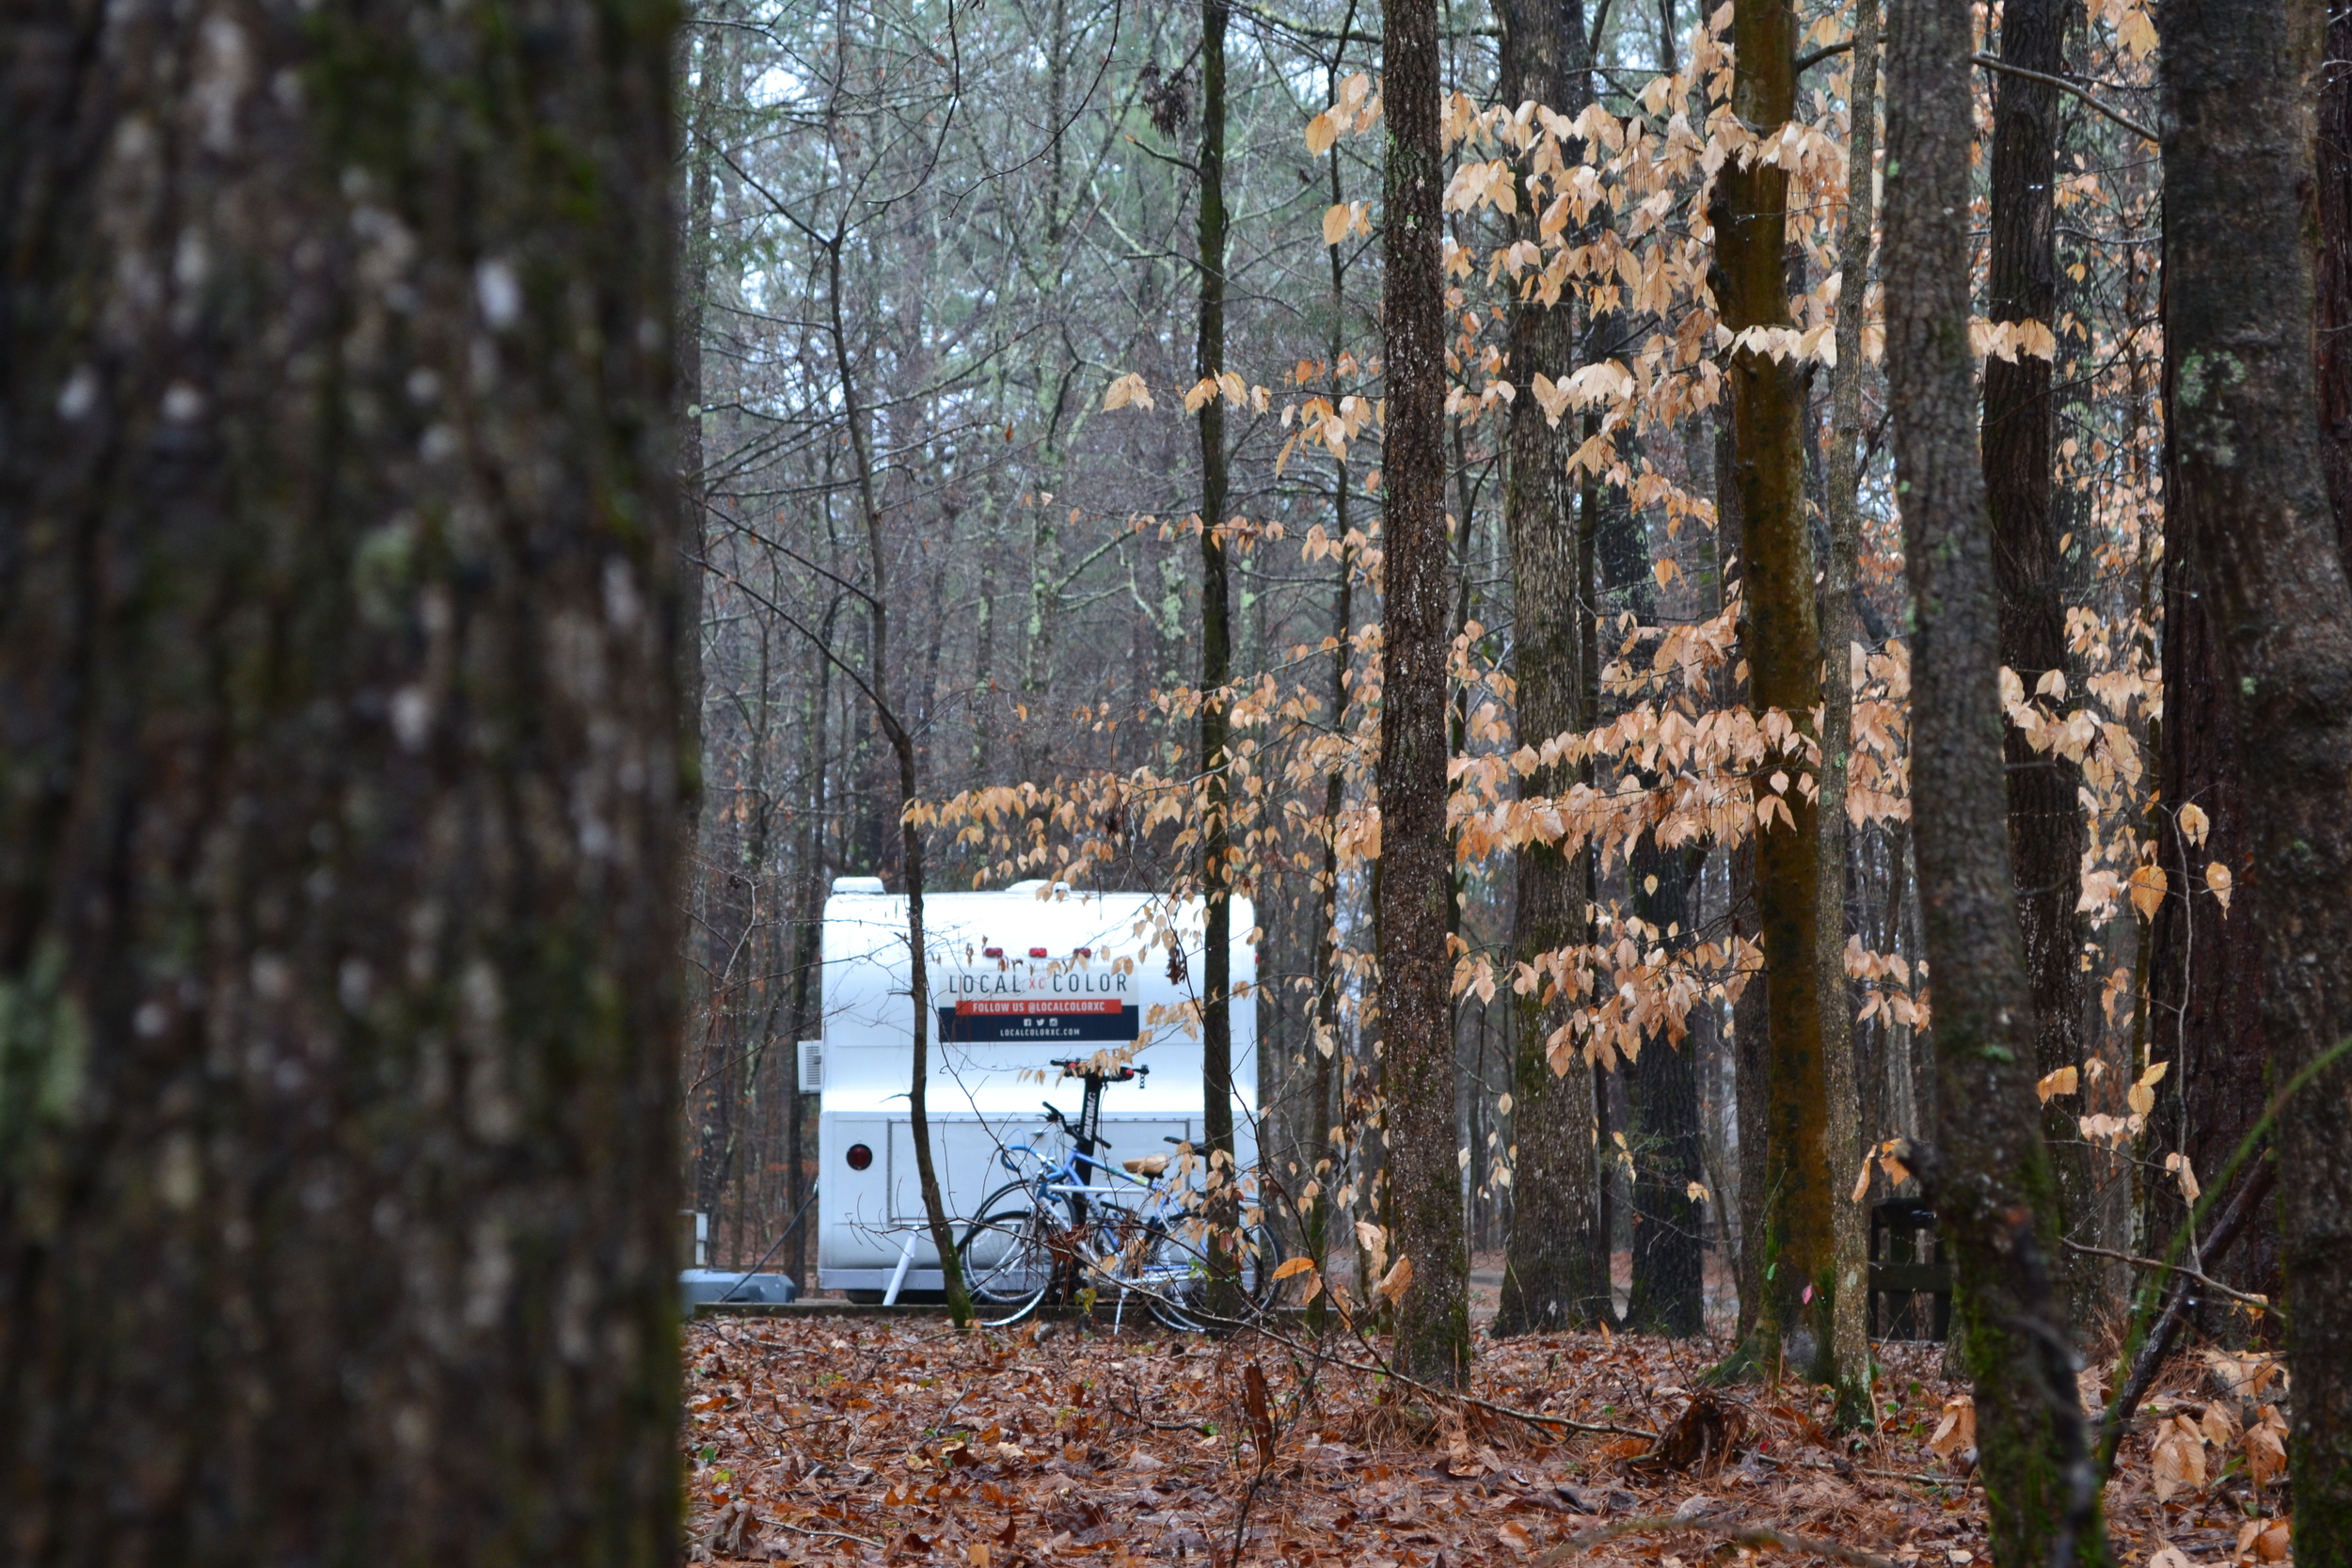 Elsie rides out the unseasonable chill and spooky isolation at Wall Doxey State Park, near Oxford, MS.